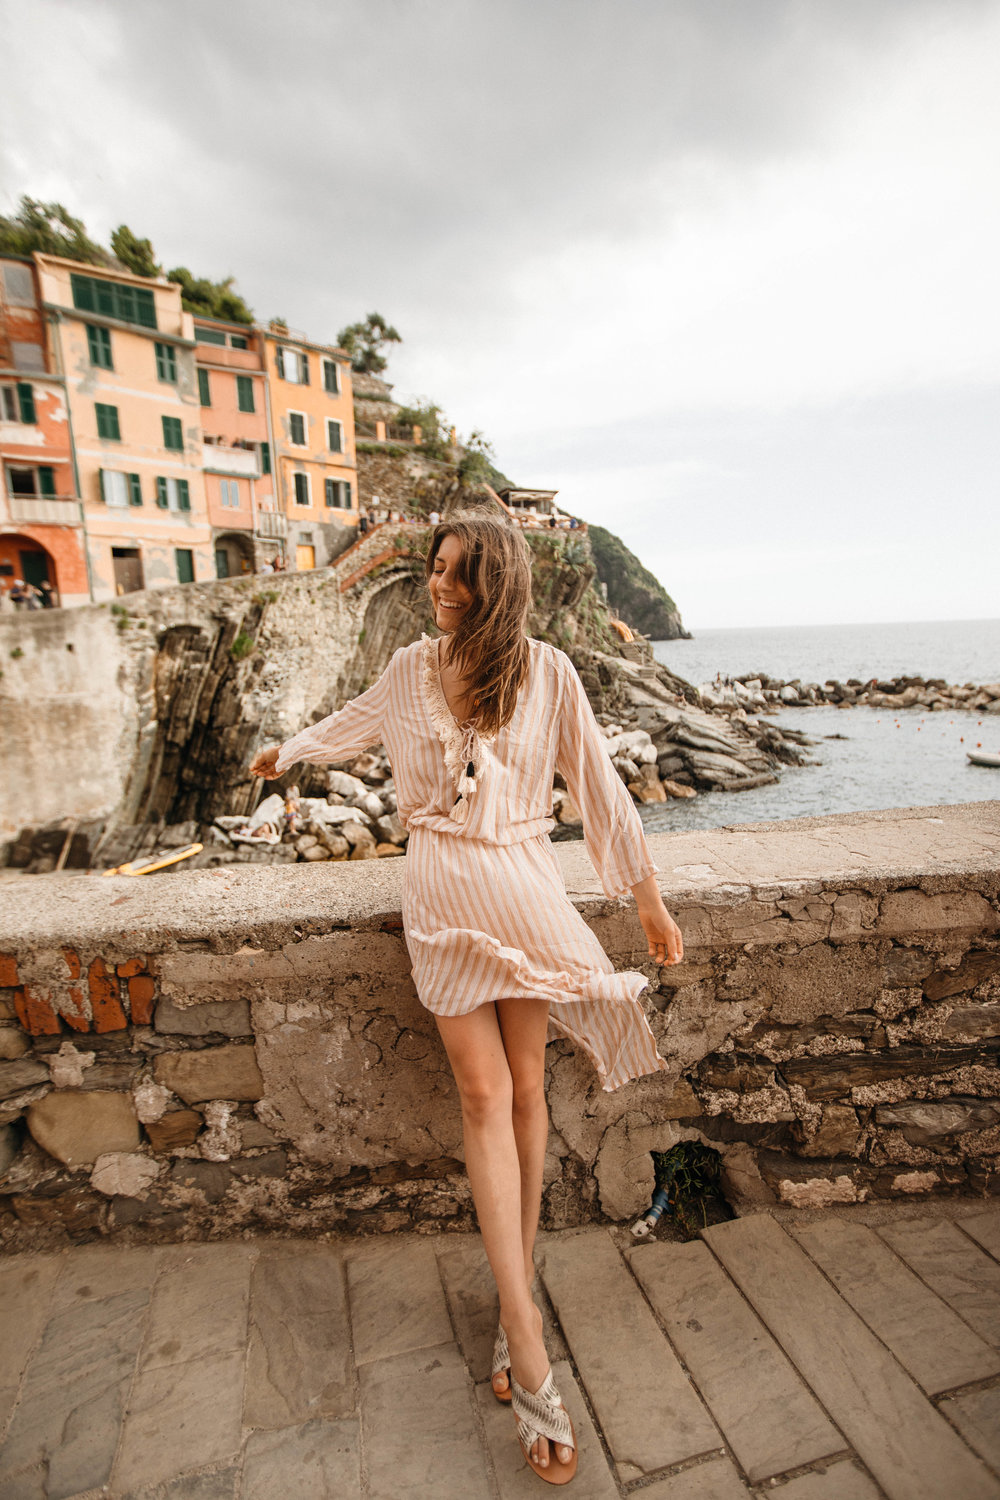 Gazing out over the brilliant open ocean in a bright sundress during a trip to Europe